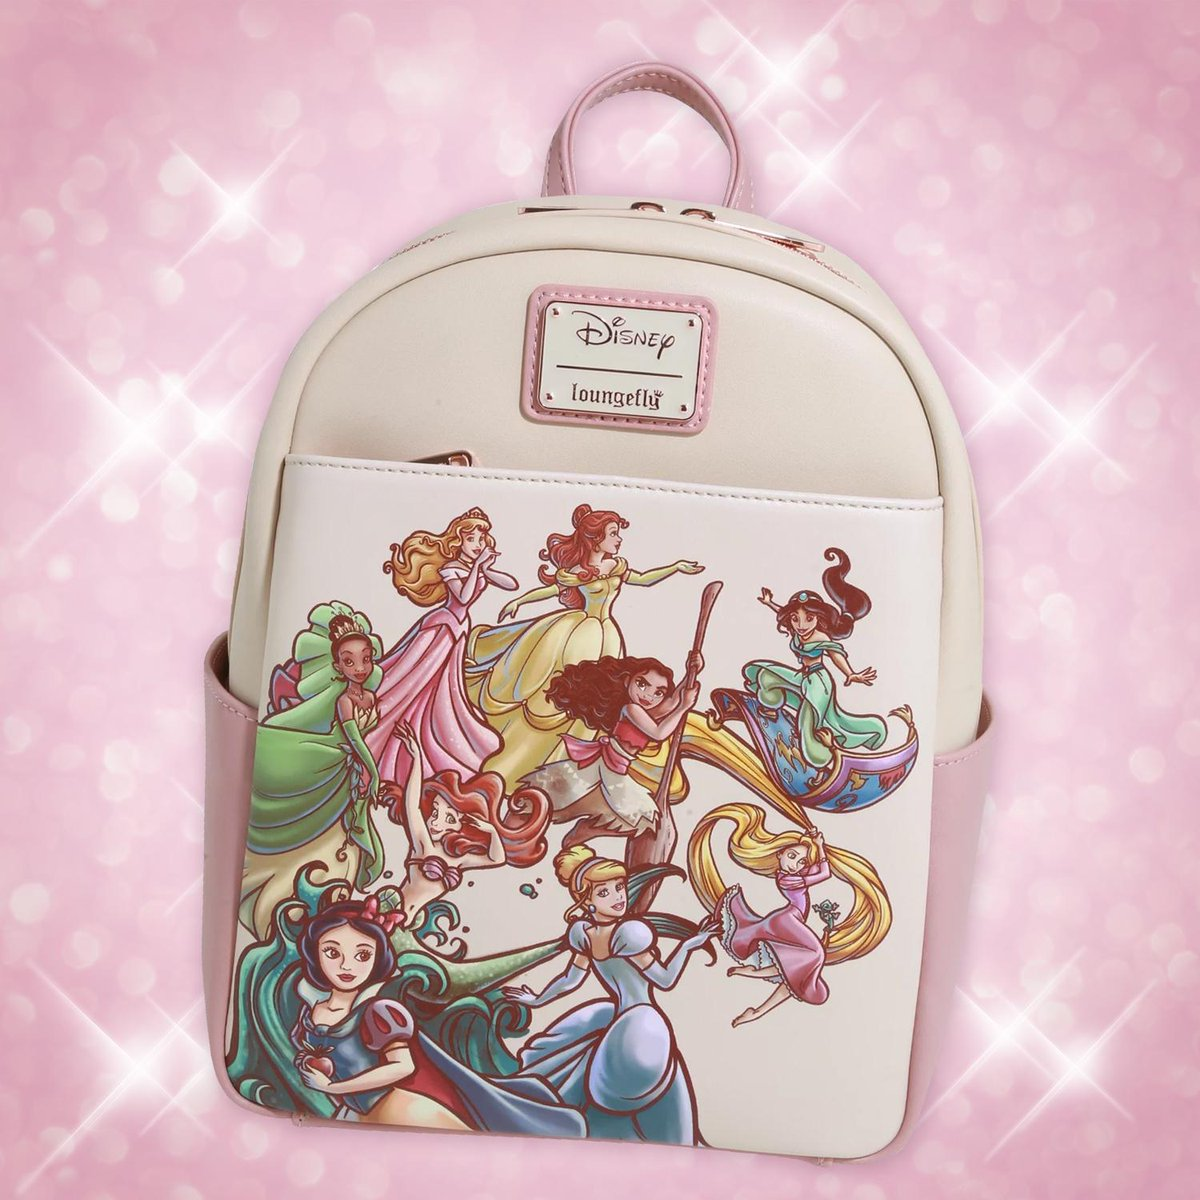 The entire princess squad on one mini backpack?! That's right!!! All in one! 💕👑💕 Exclusively for our friends, @BoxLunchGifts! #Loungefly #Disney #DisneyPrincess #BoxLunch